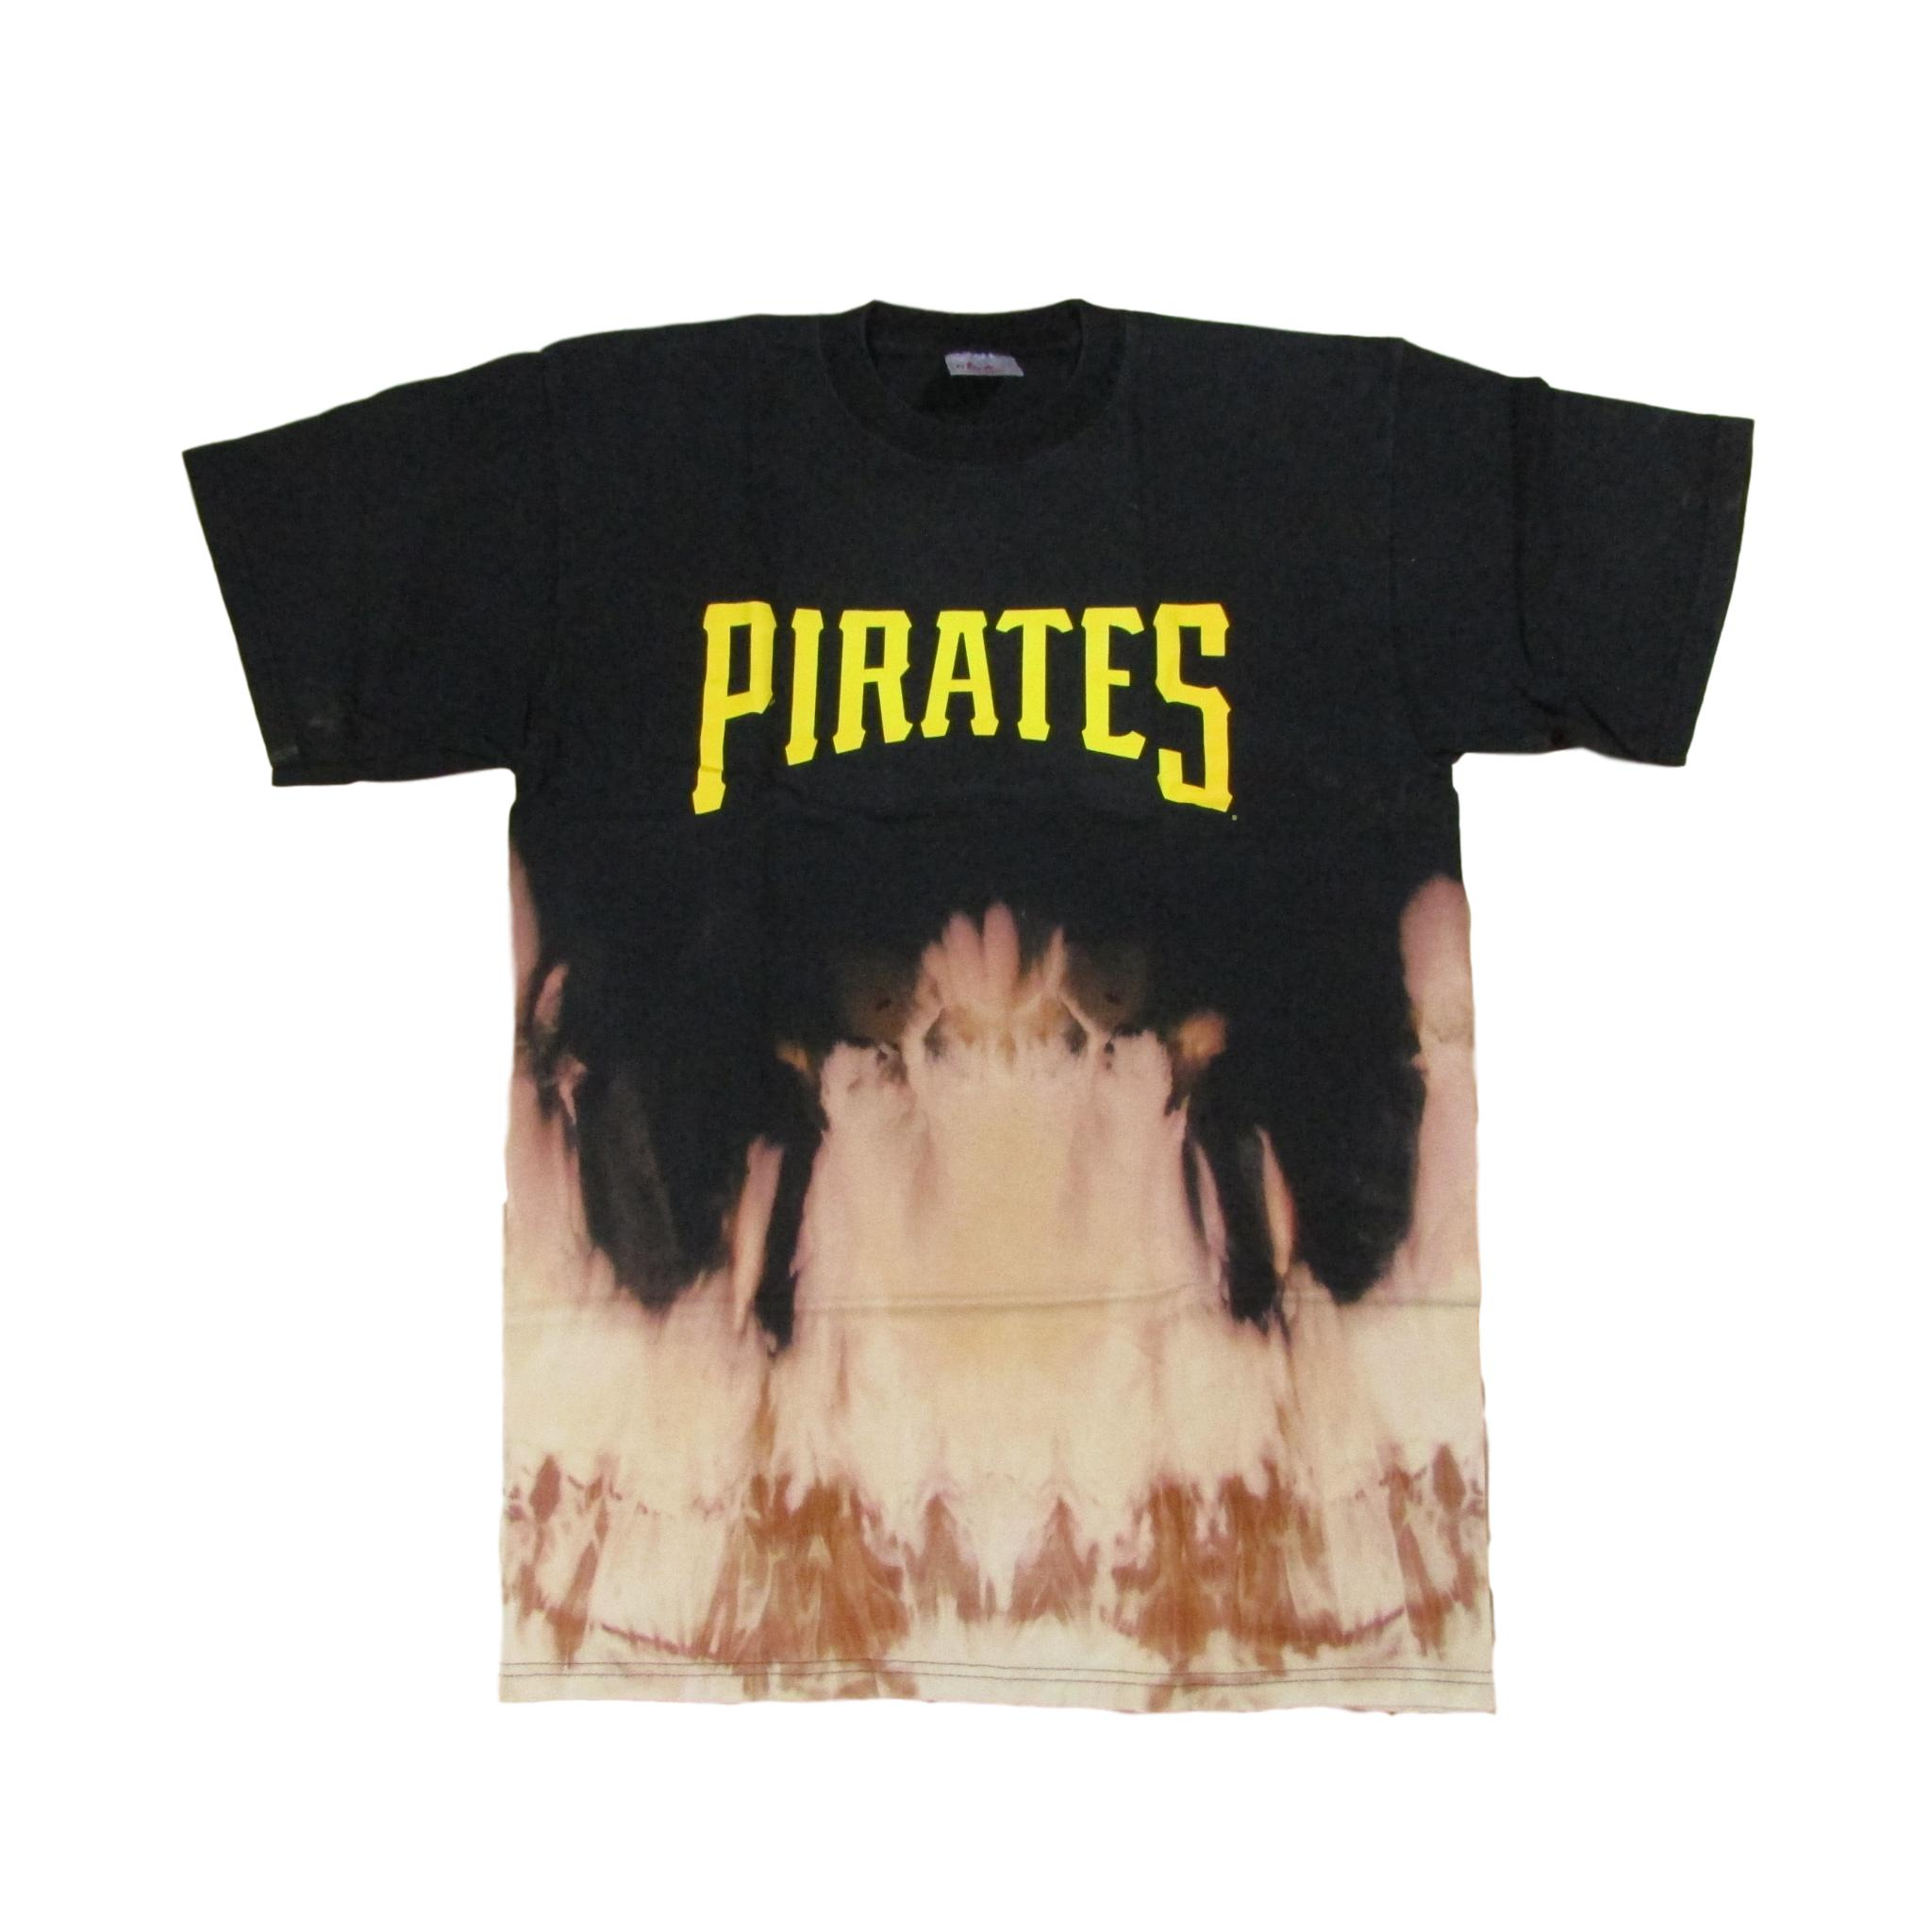 Pittsburgh Pirates Tie Dye Bleach Baseball Vintage T-Shirt Sz L